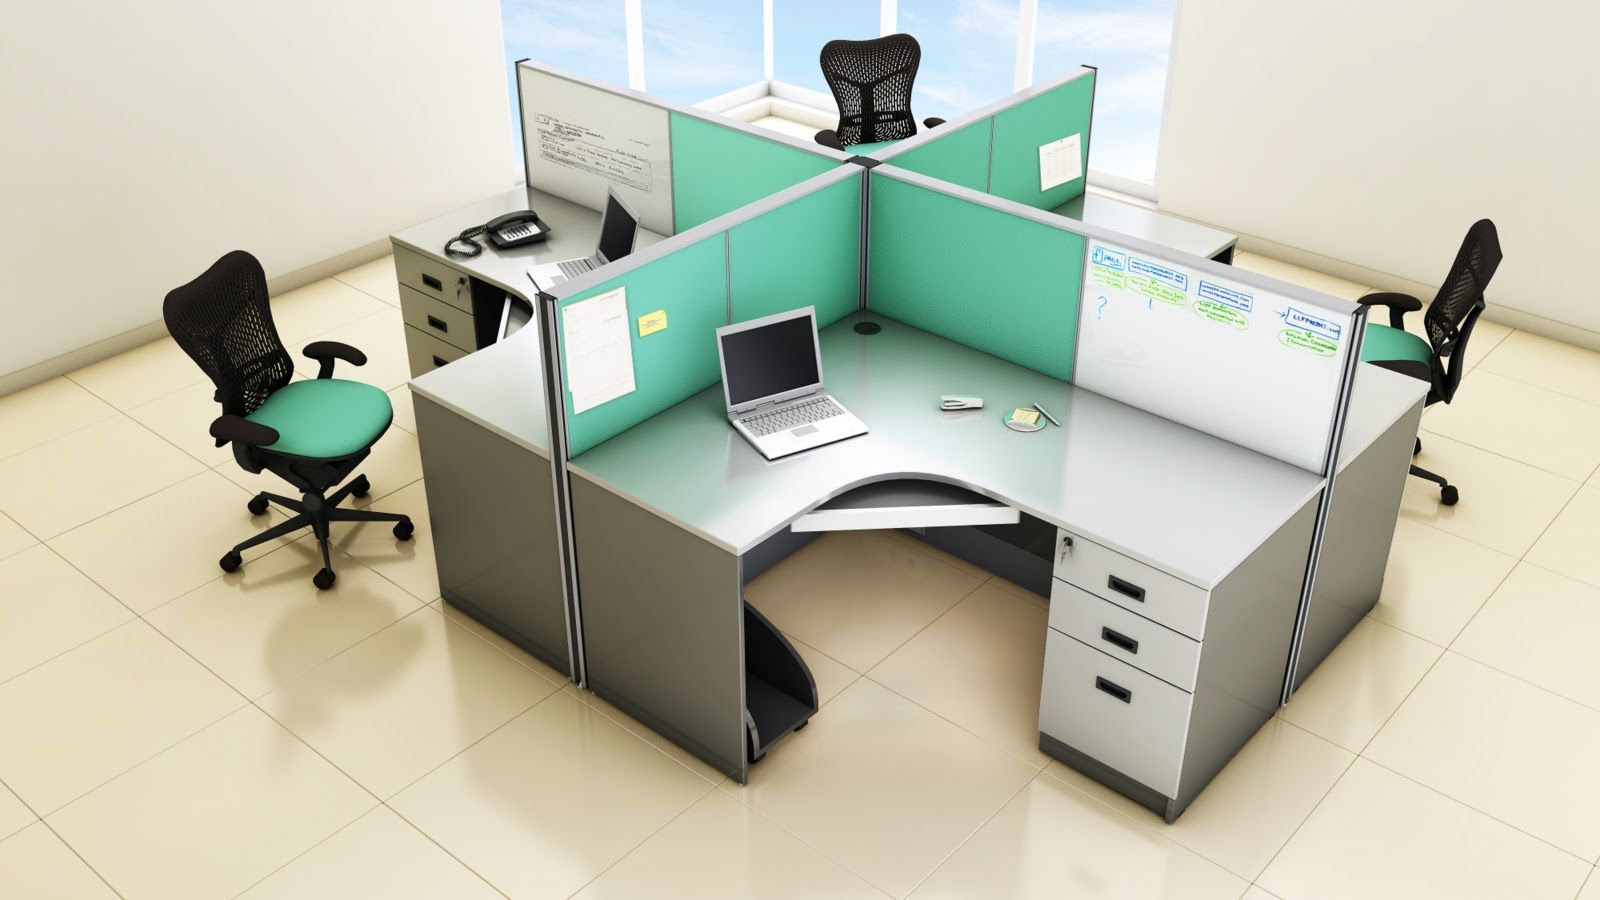 We At Decor X A Most Upcoming Professionally Managed Office Modular System Furniture And Interior Decoration Firm Would Office Furniture Manufacturers Modular Furniture Used Office Furniture